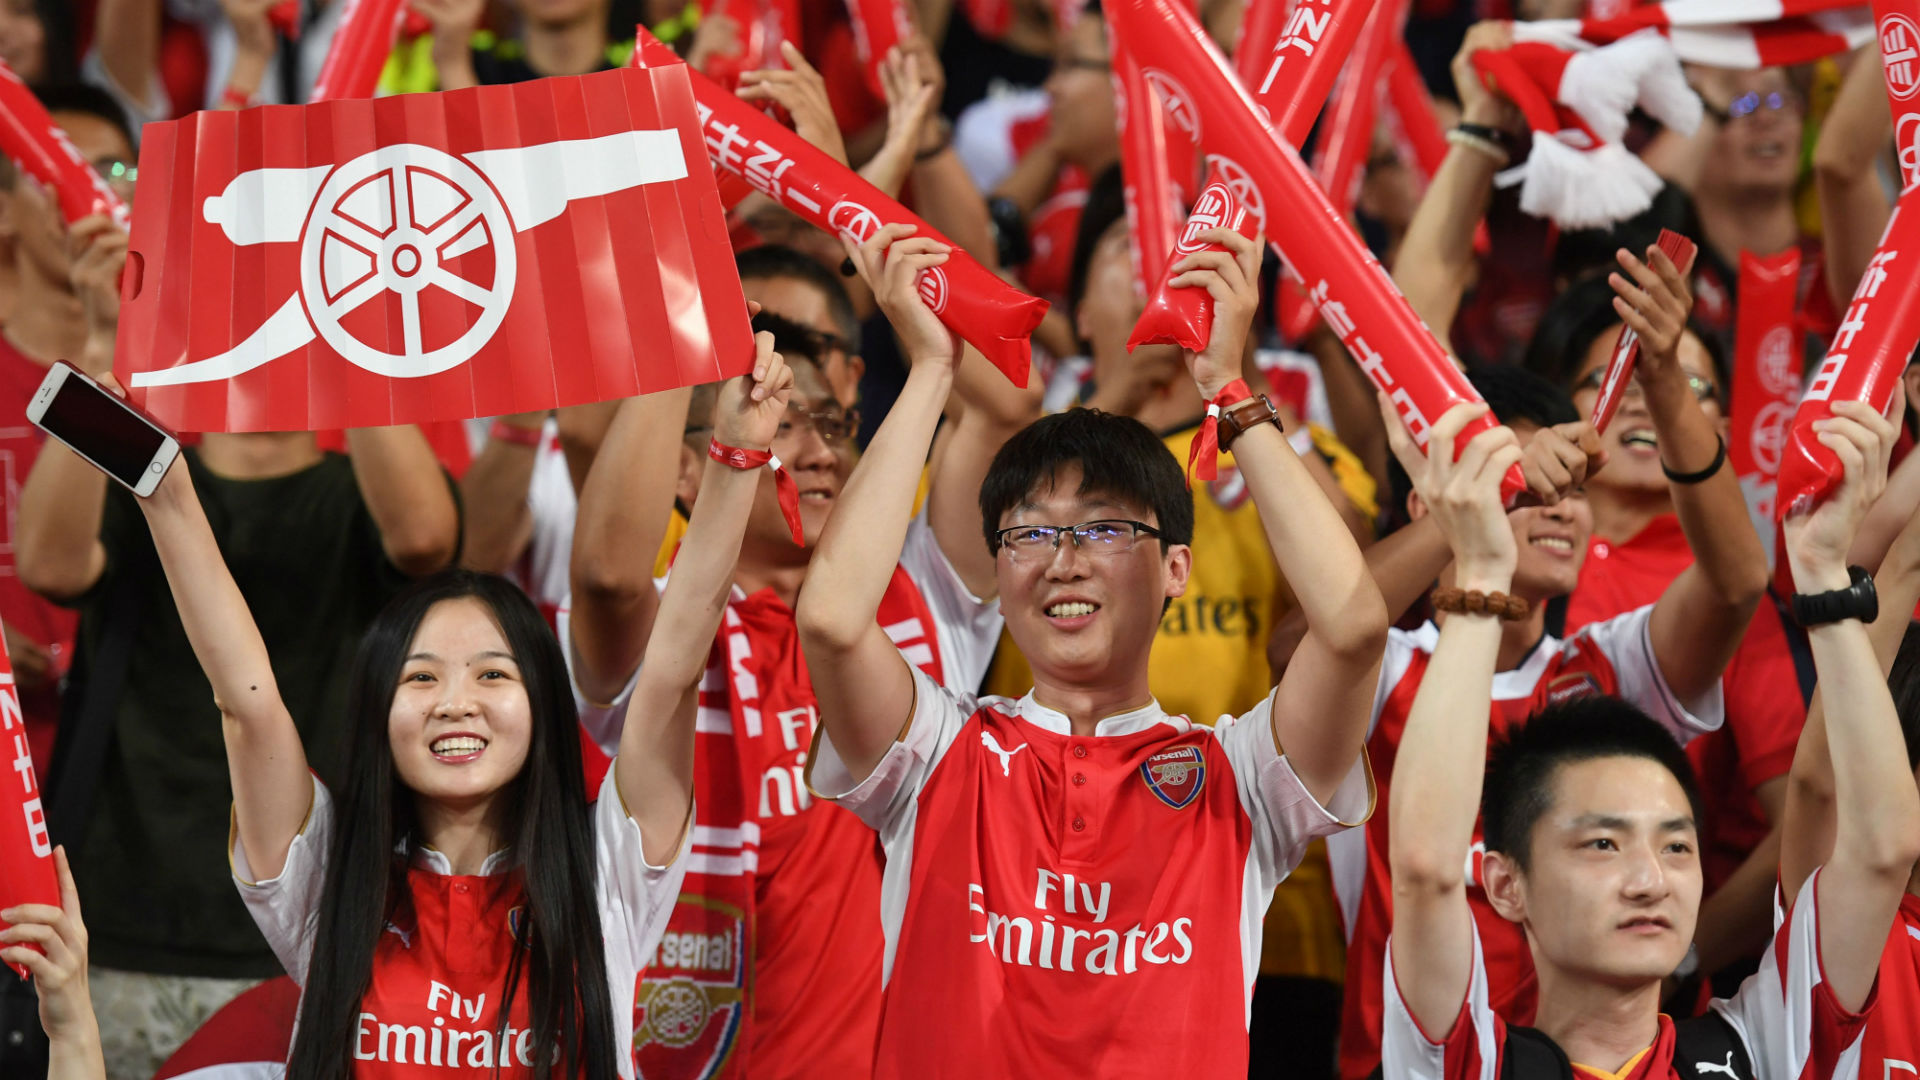 Arsenal fans China